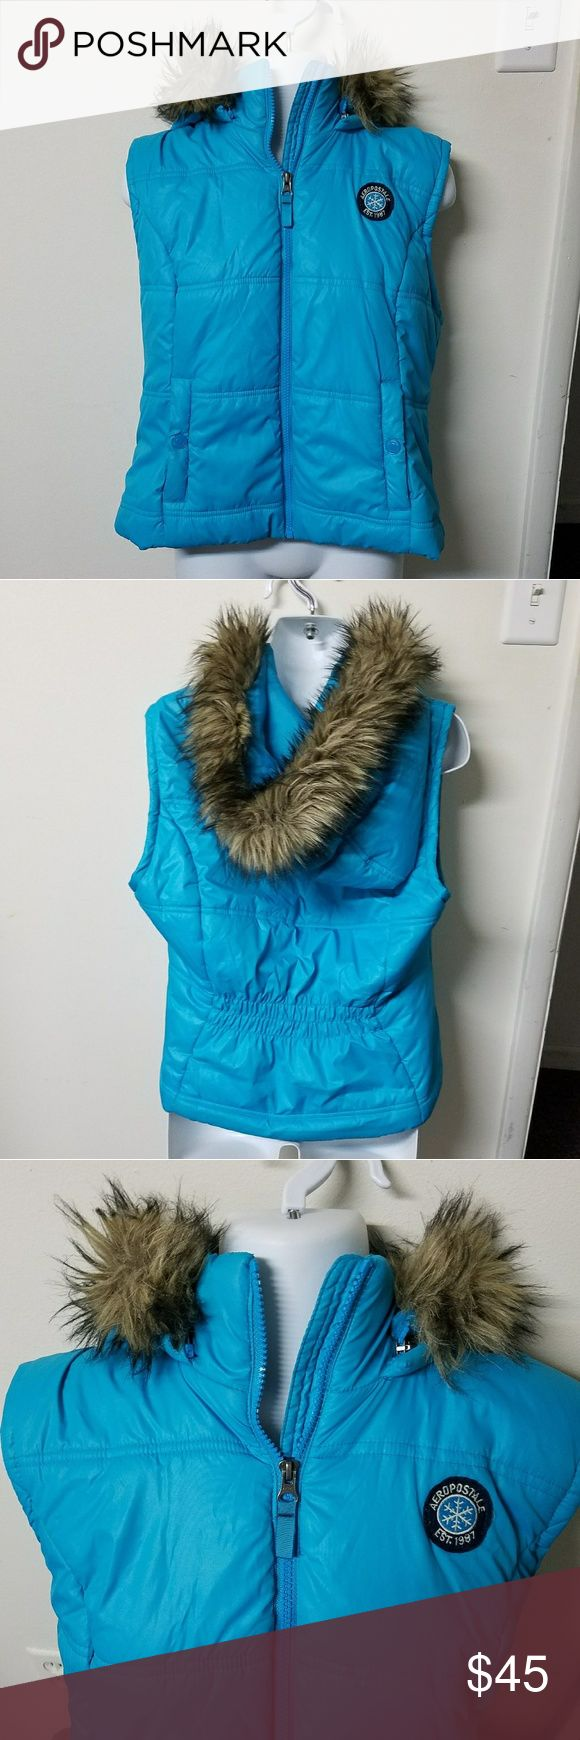 Aeropostale SKY blue puffy vest detach hood XL EUC Up for sale is a juniors XL Aeropostale puffy vest. It is a gorgeous and lovely sky blue. It is in excellent condition, all zippers and snaps in perfect shape. Nice subtle Aero logo. Purchased direct from Aero, not sold for a long time. Yes, this actually warm.  Super cute lining inside.   Faux fur hood is detachable. 20.5 in pit to pit x 20 inches long zipped.   Thanks for looking and please ask any questions!! ❤❤ Aeropostale Jackets…